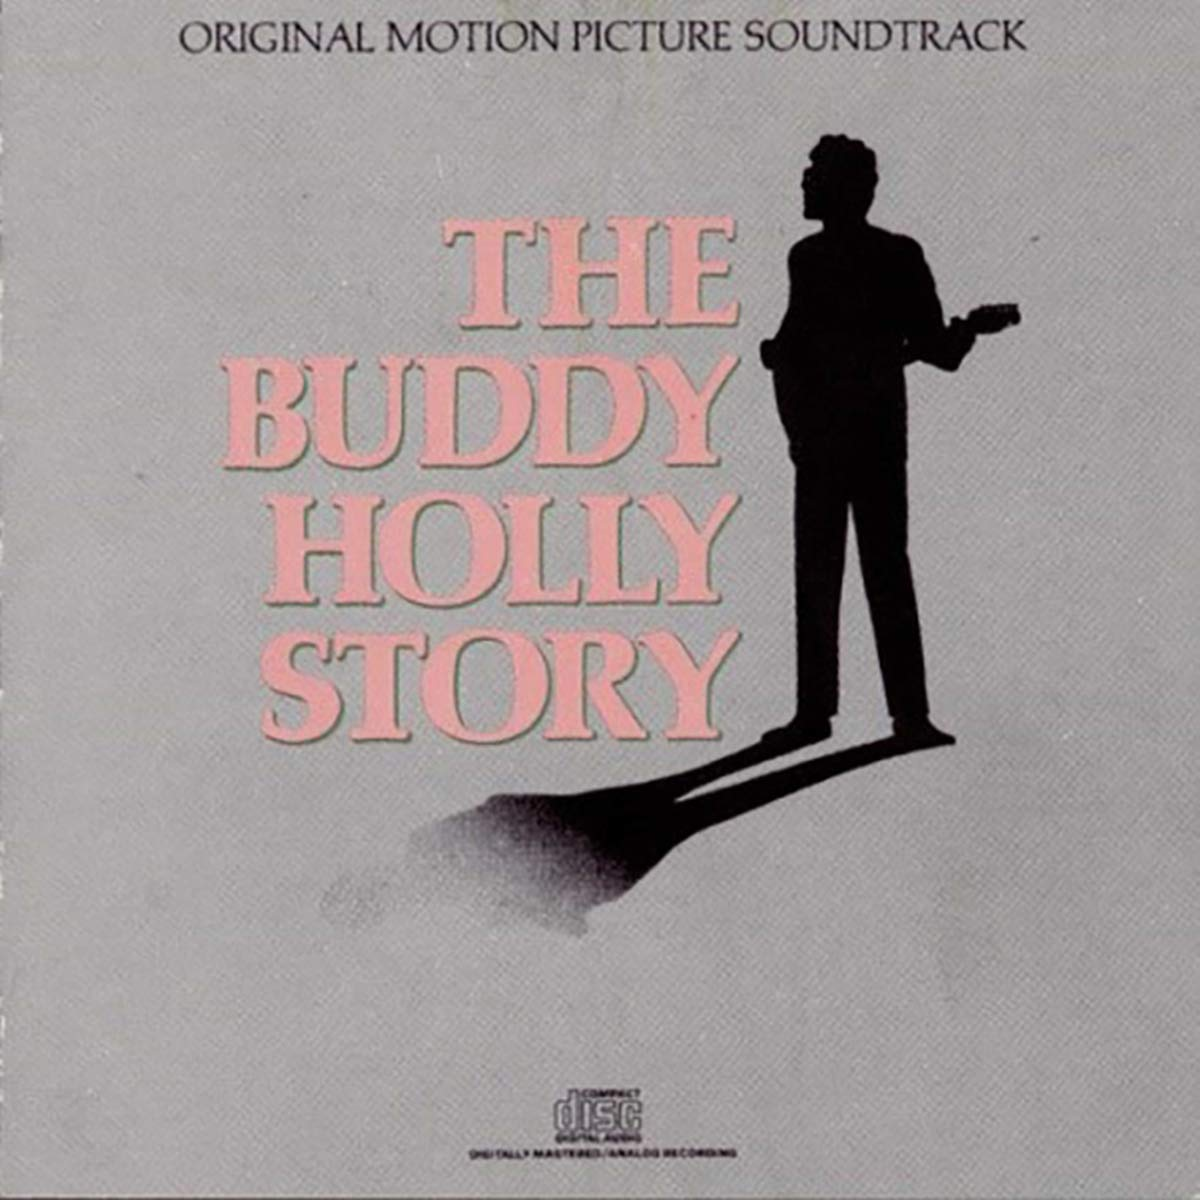 Buddy Holly story (The) (1978) (vinile)